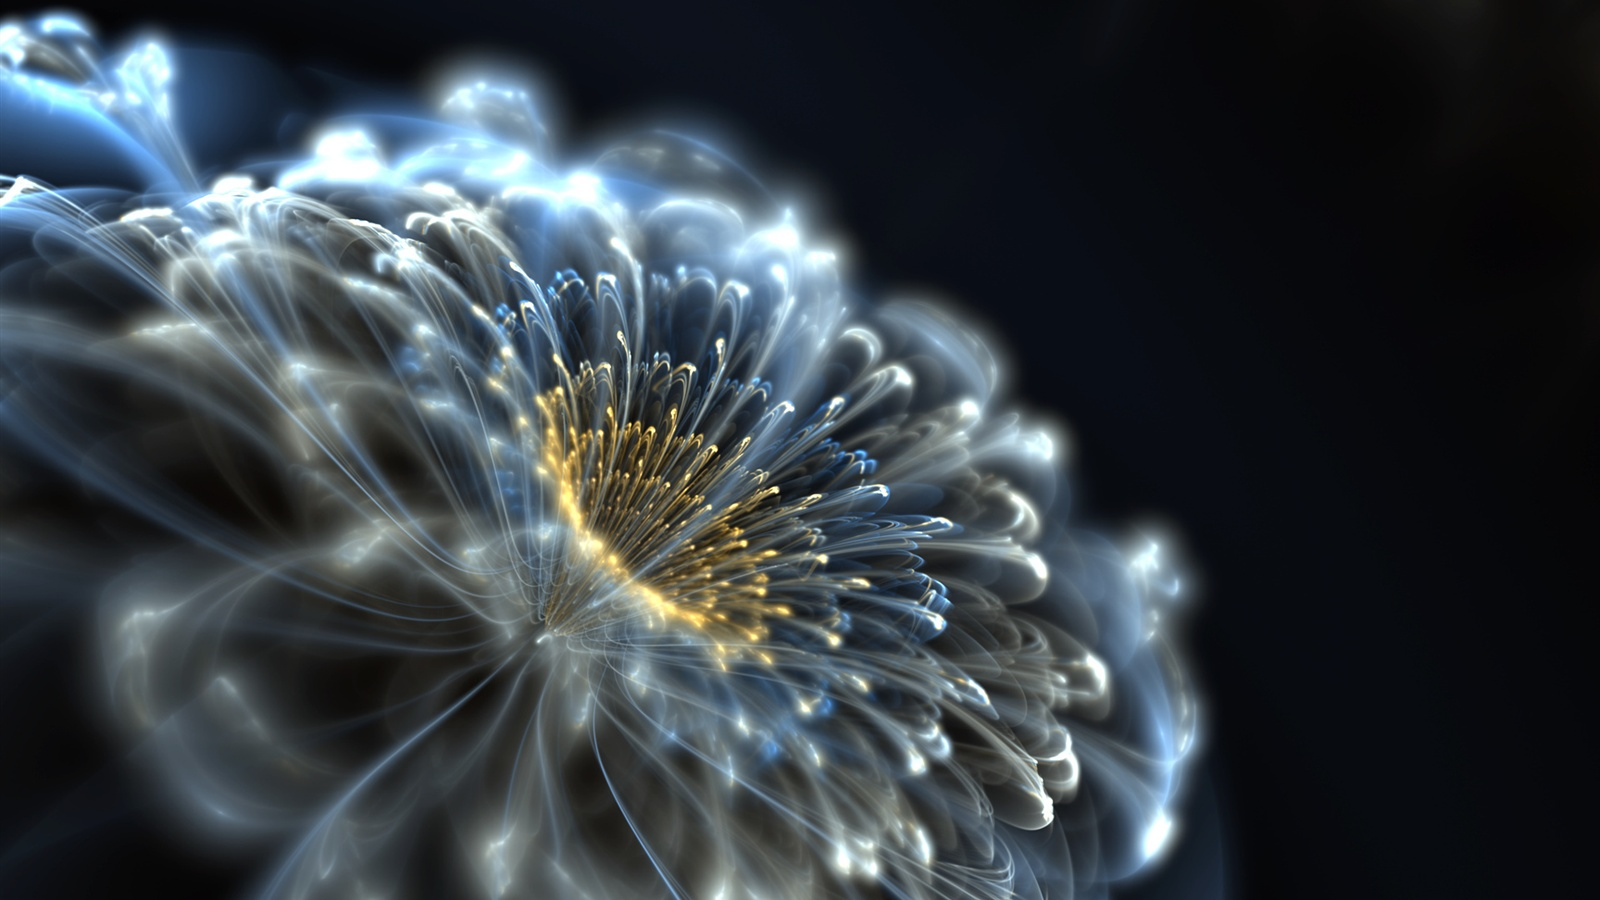 Abstract neon flower wallpaper - 1600x900